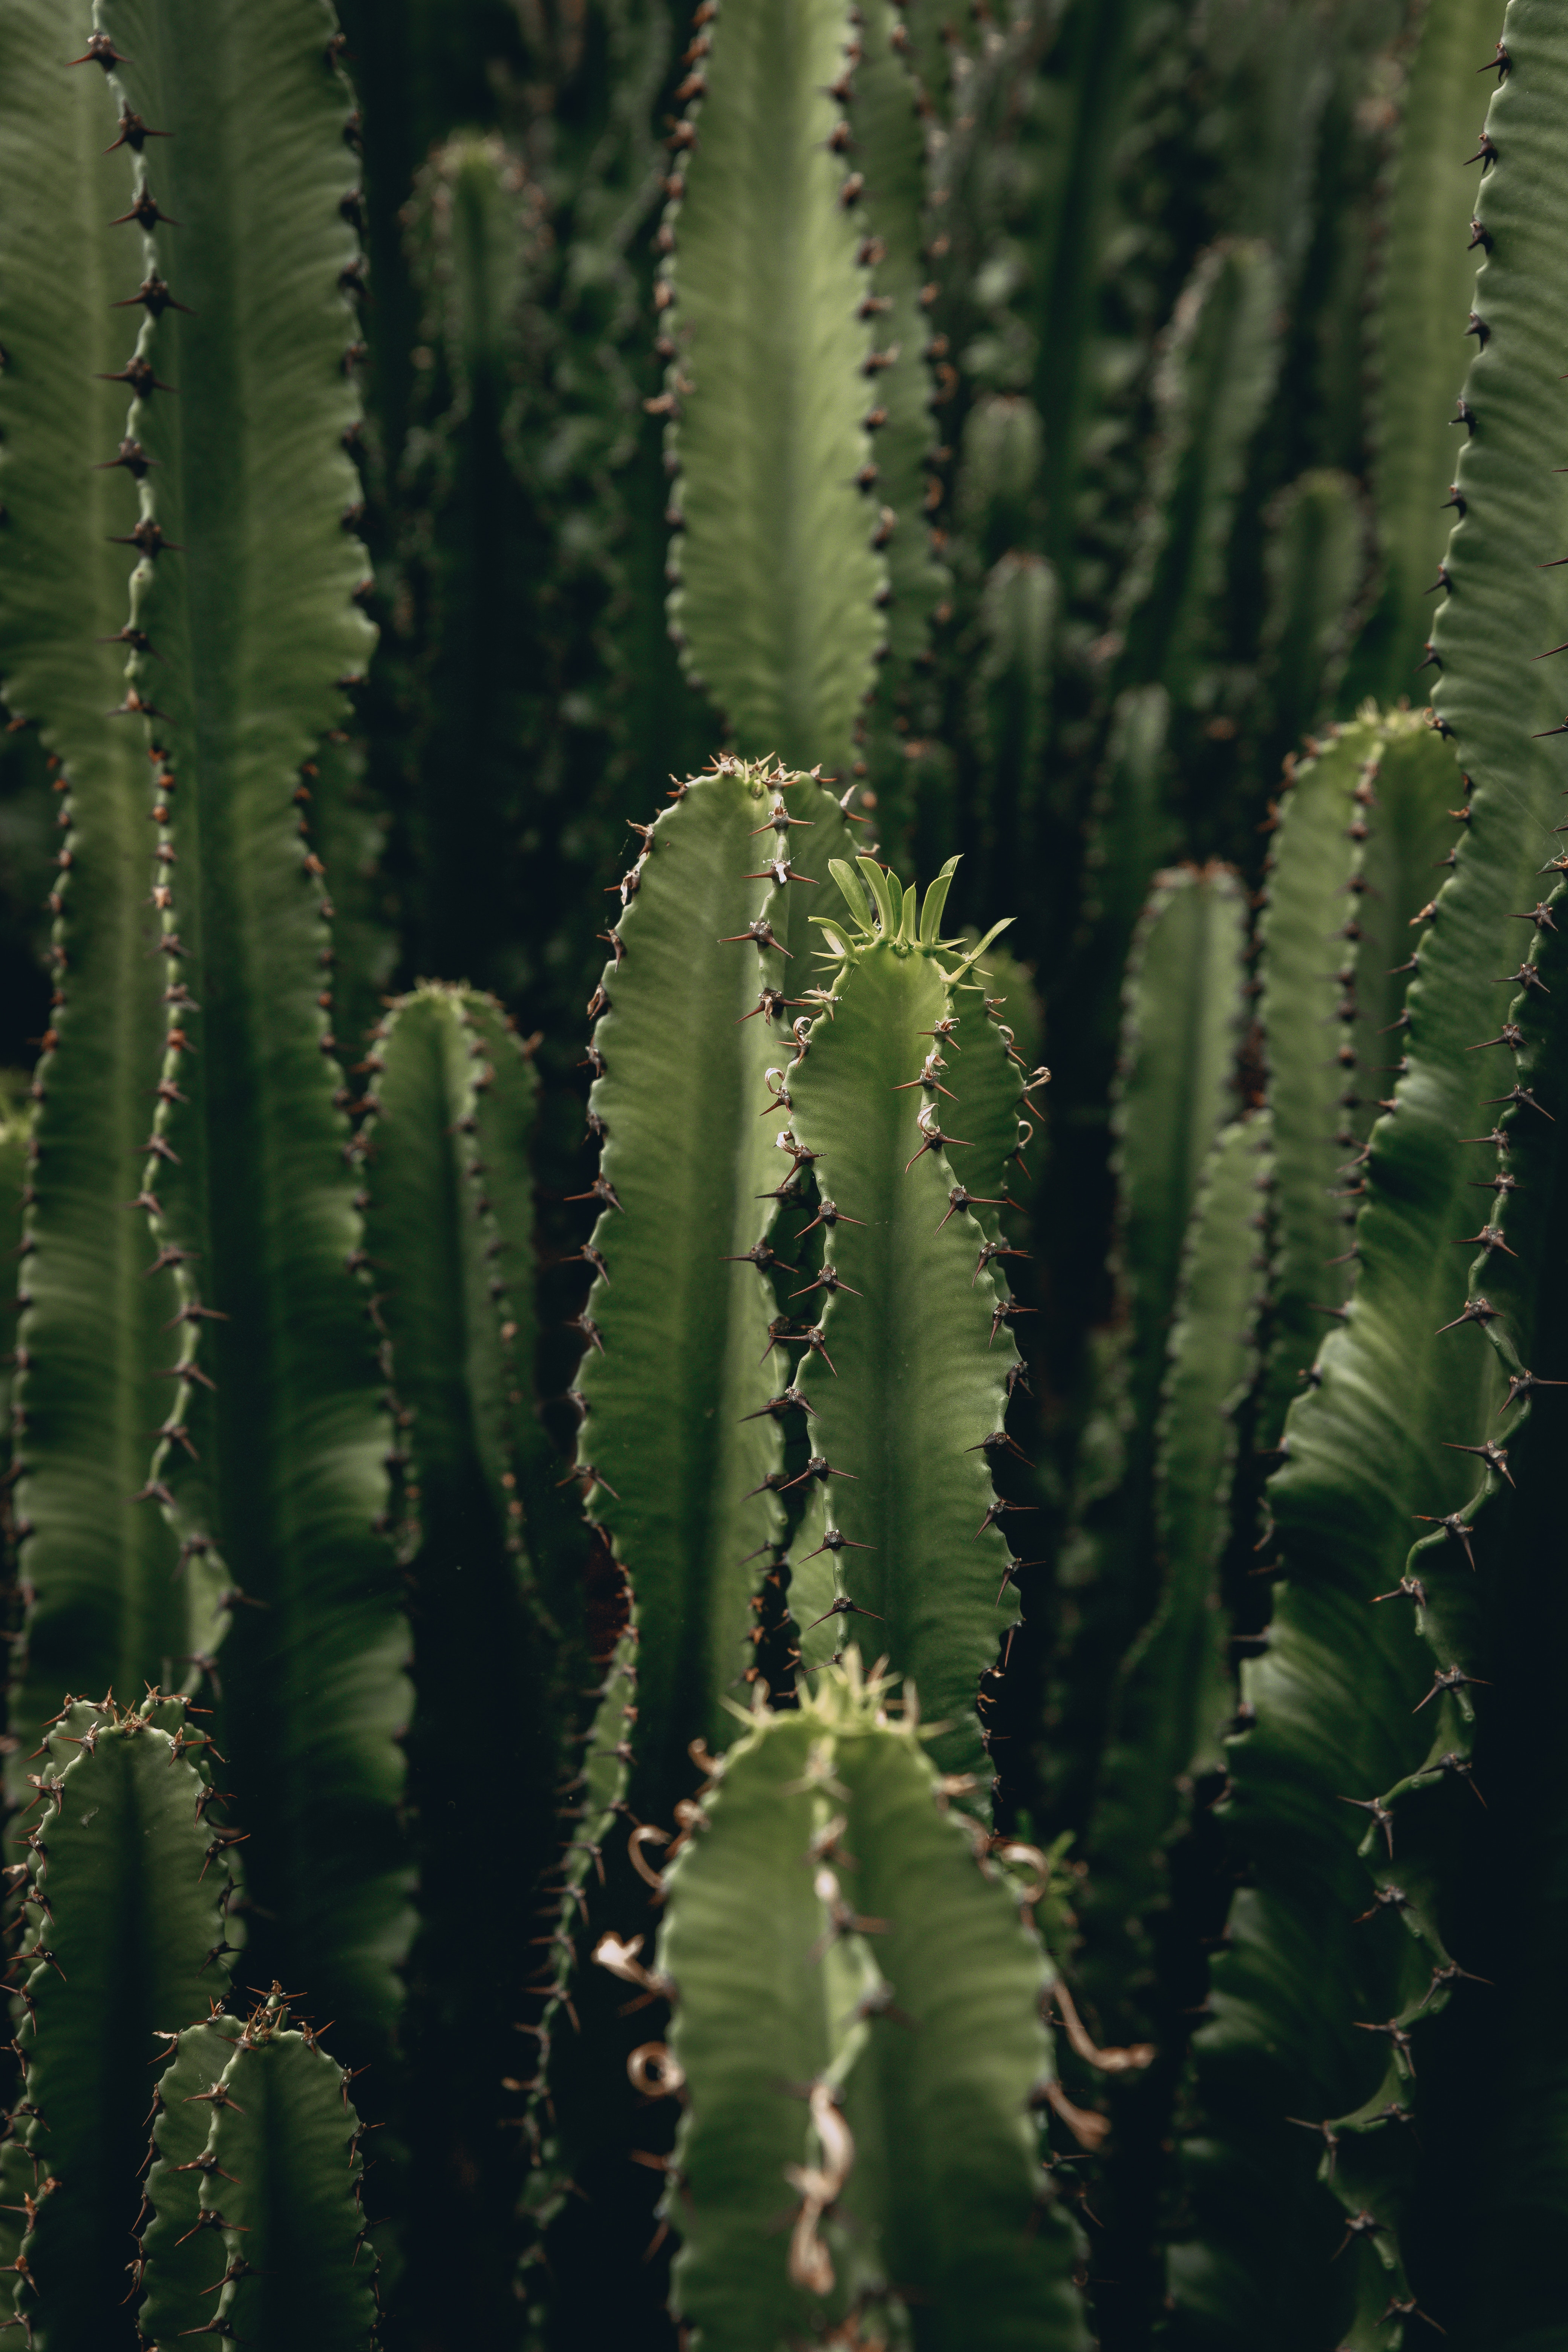 142061 download wallpaper Flowers, Plant, Barbed, Spiny, Cactus, Deserted screensavers and pictures for free